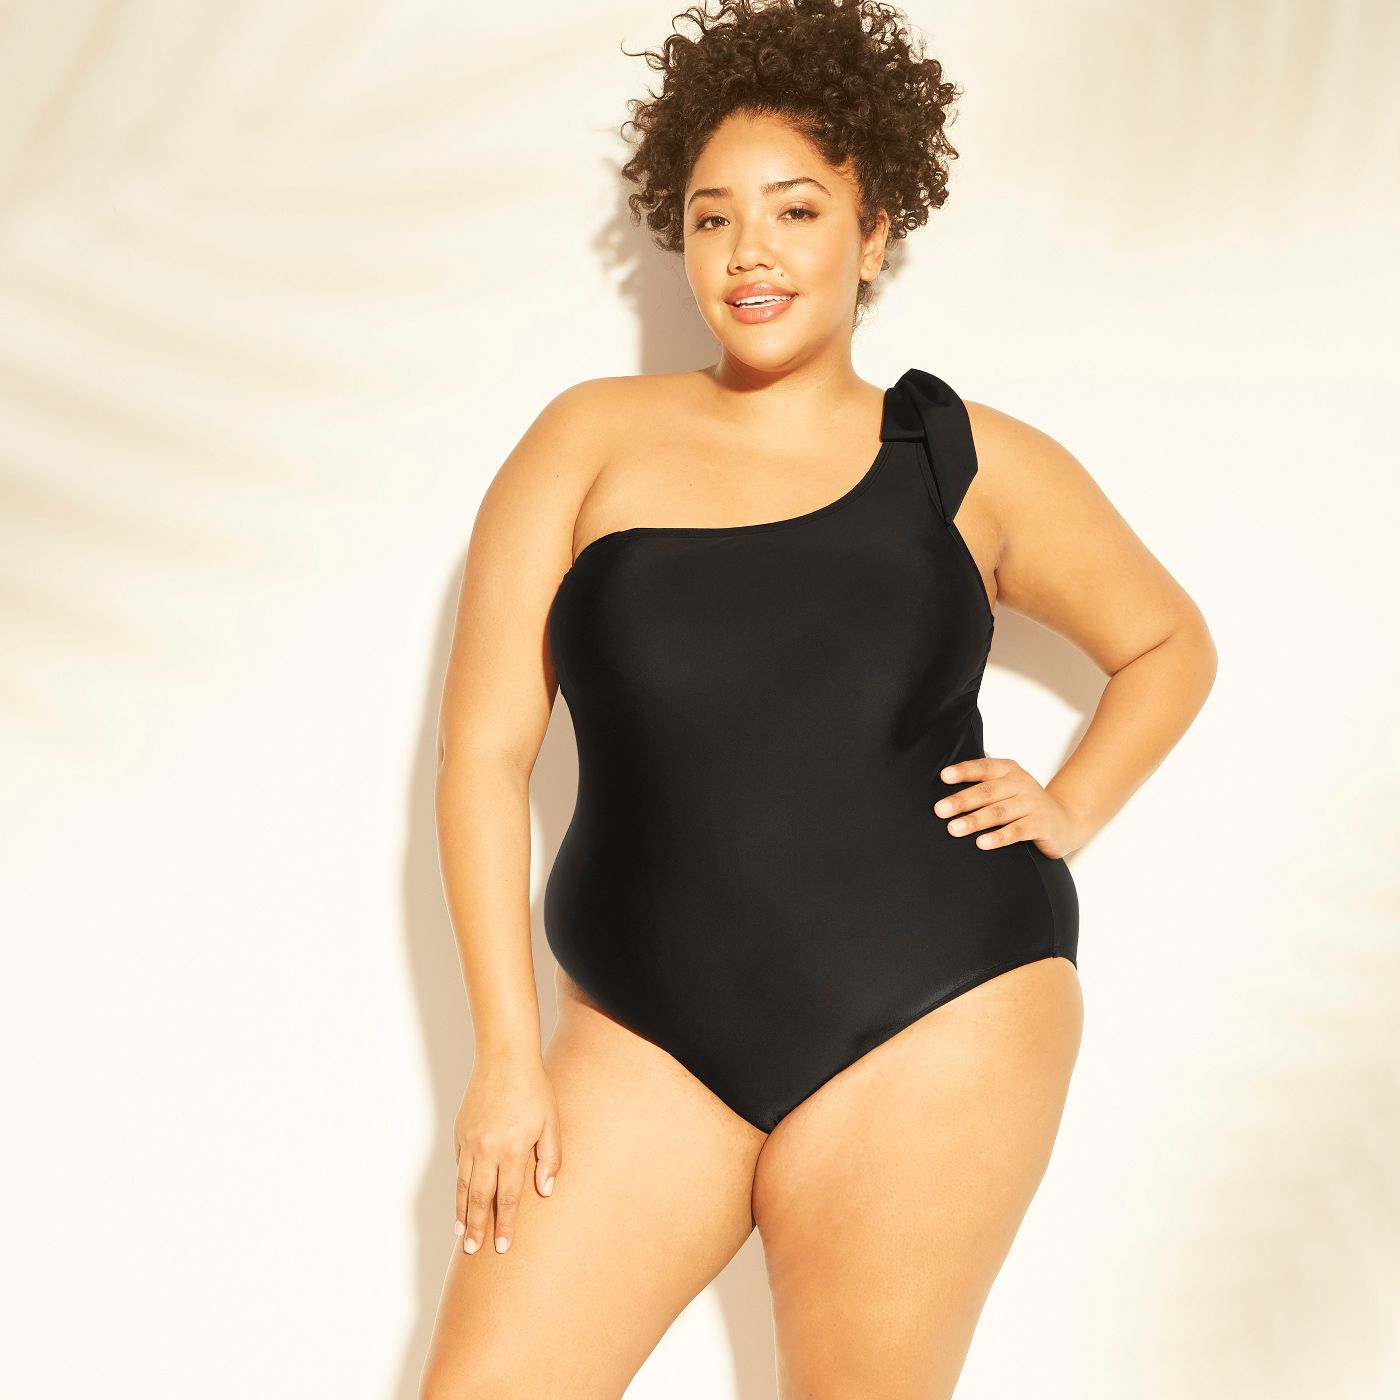 OPTION 7 sizes 14-26 plus available. I'm a sucker for this style